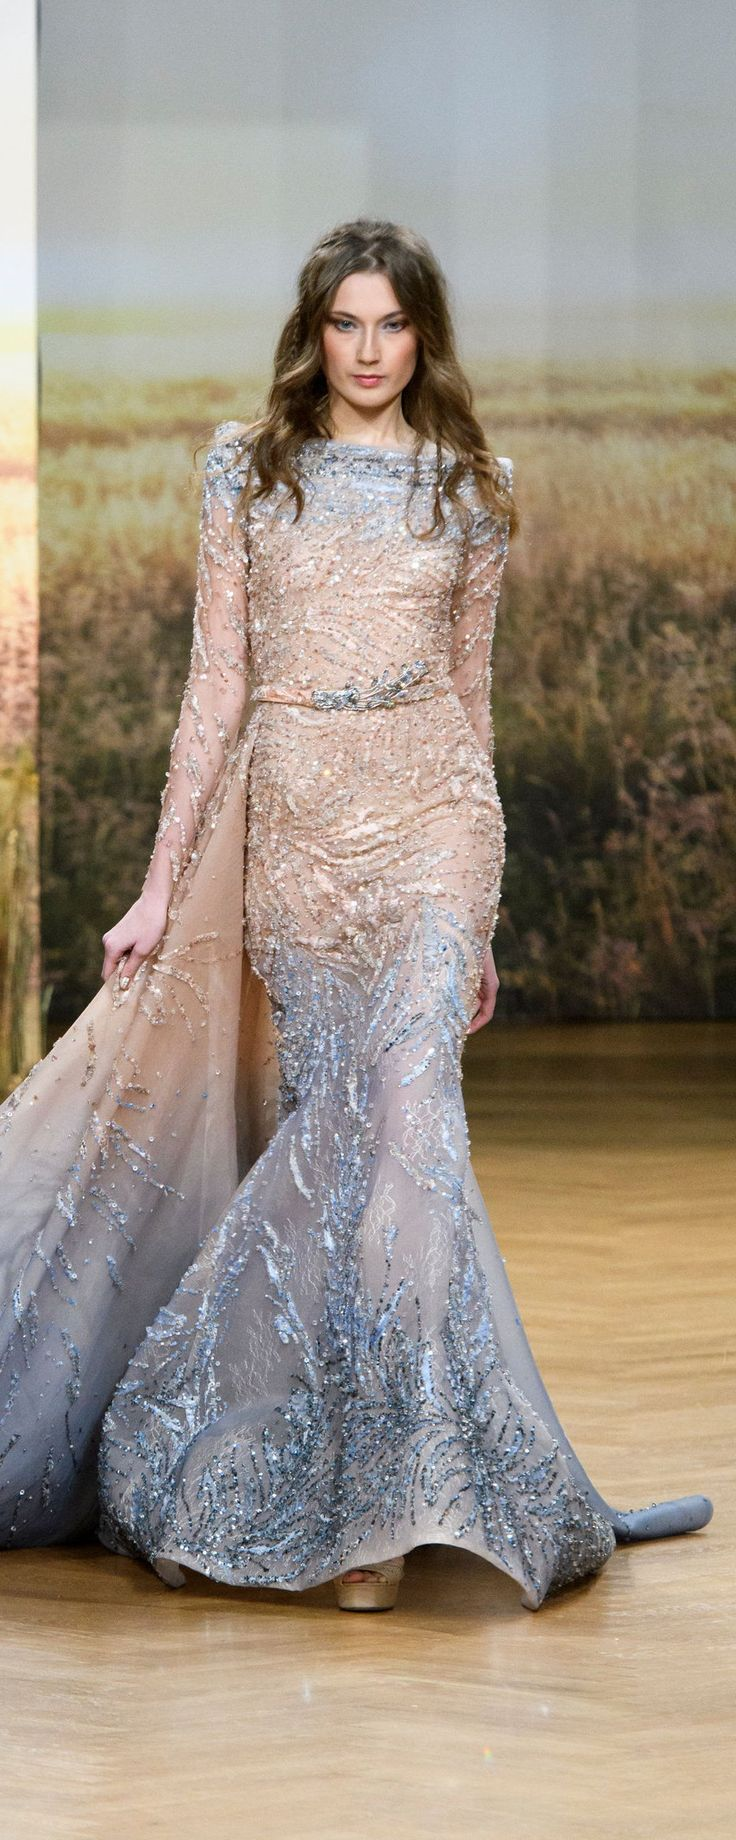 best beige topic images on pinterest fashion layouts